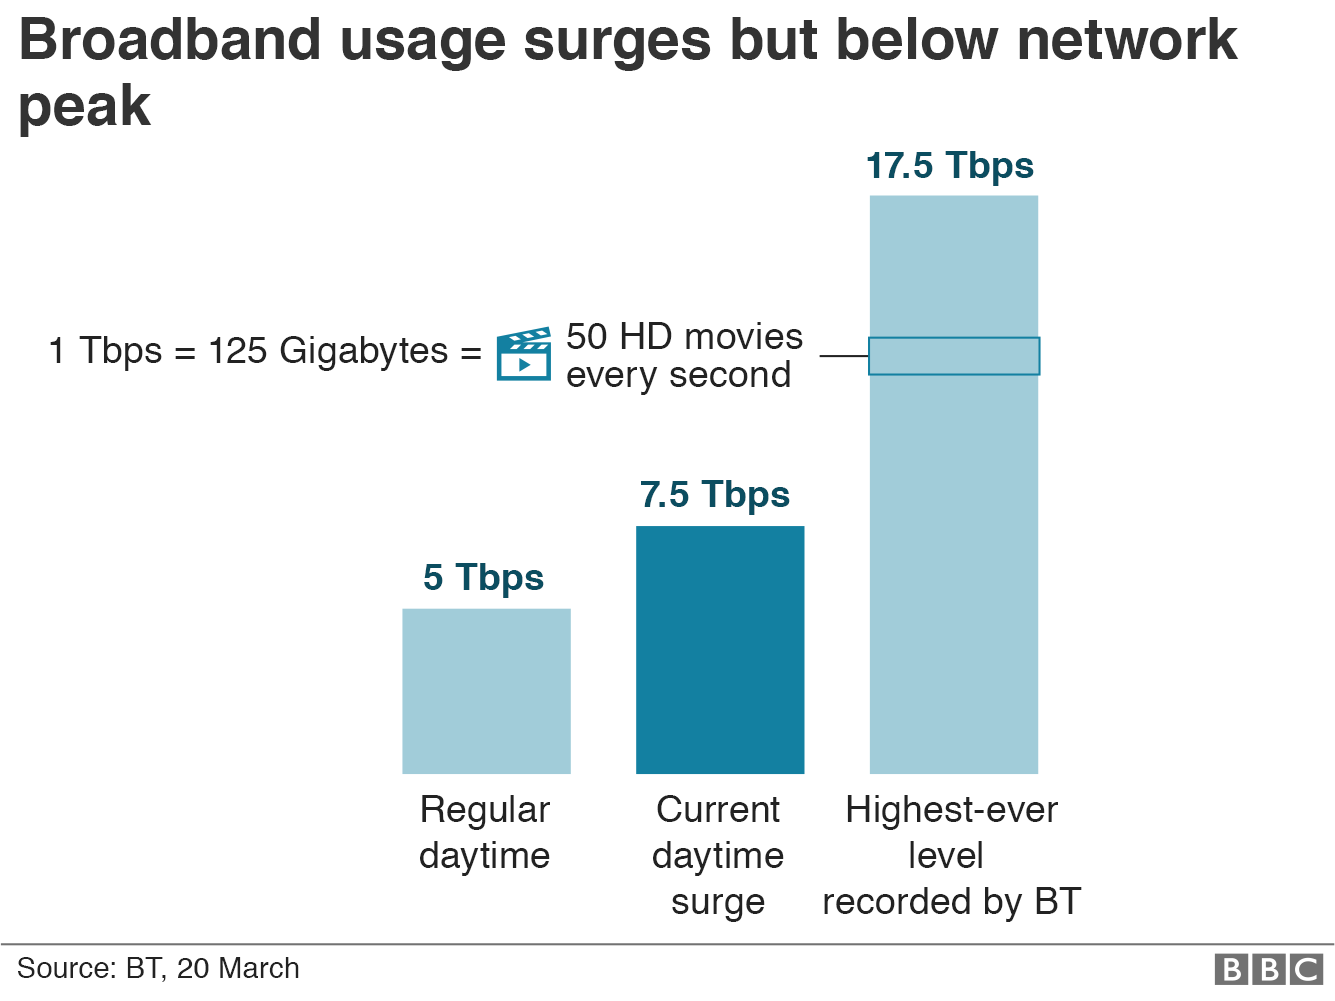 Graphic showing current data use is about 7.5 Tbps